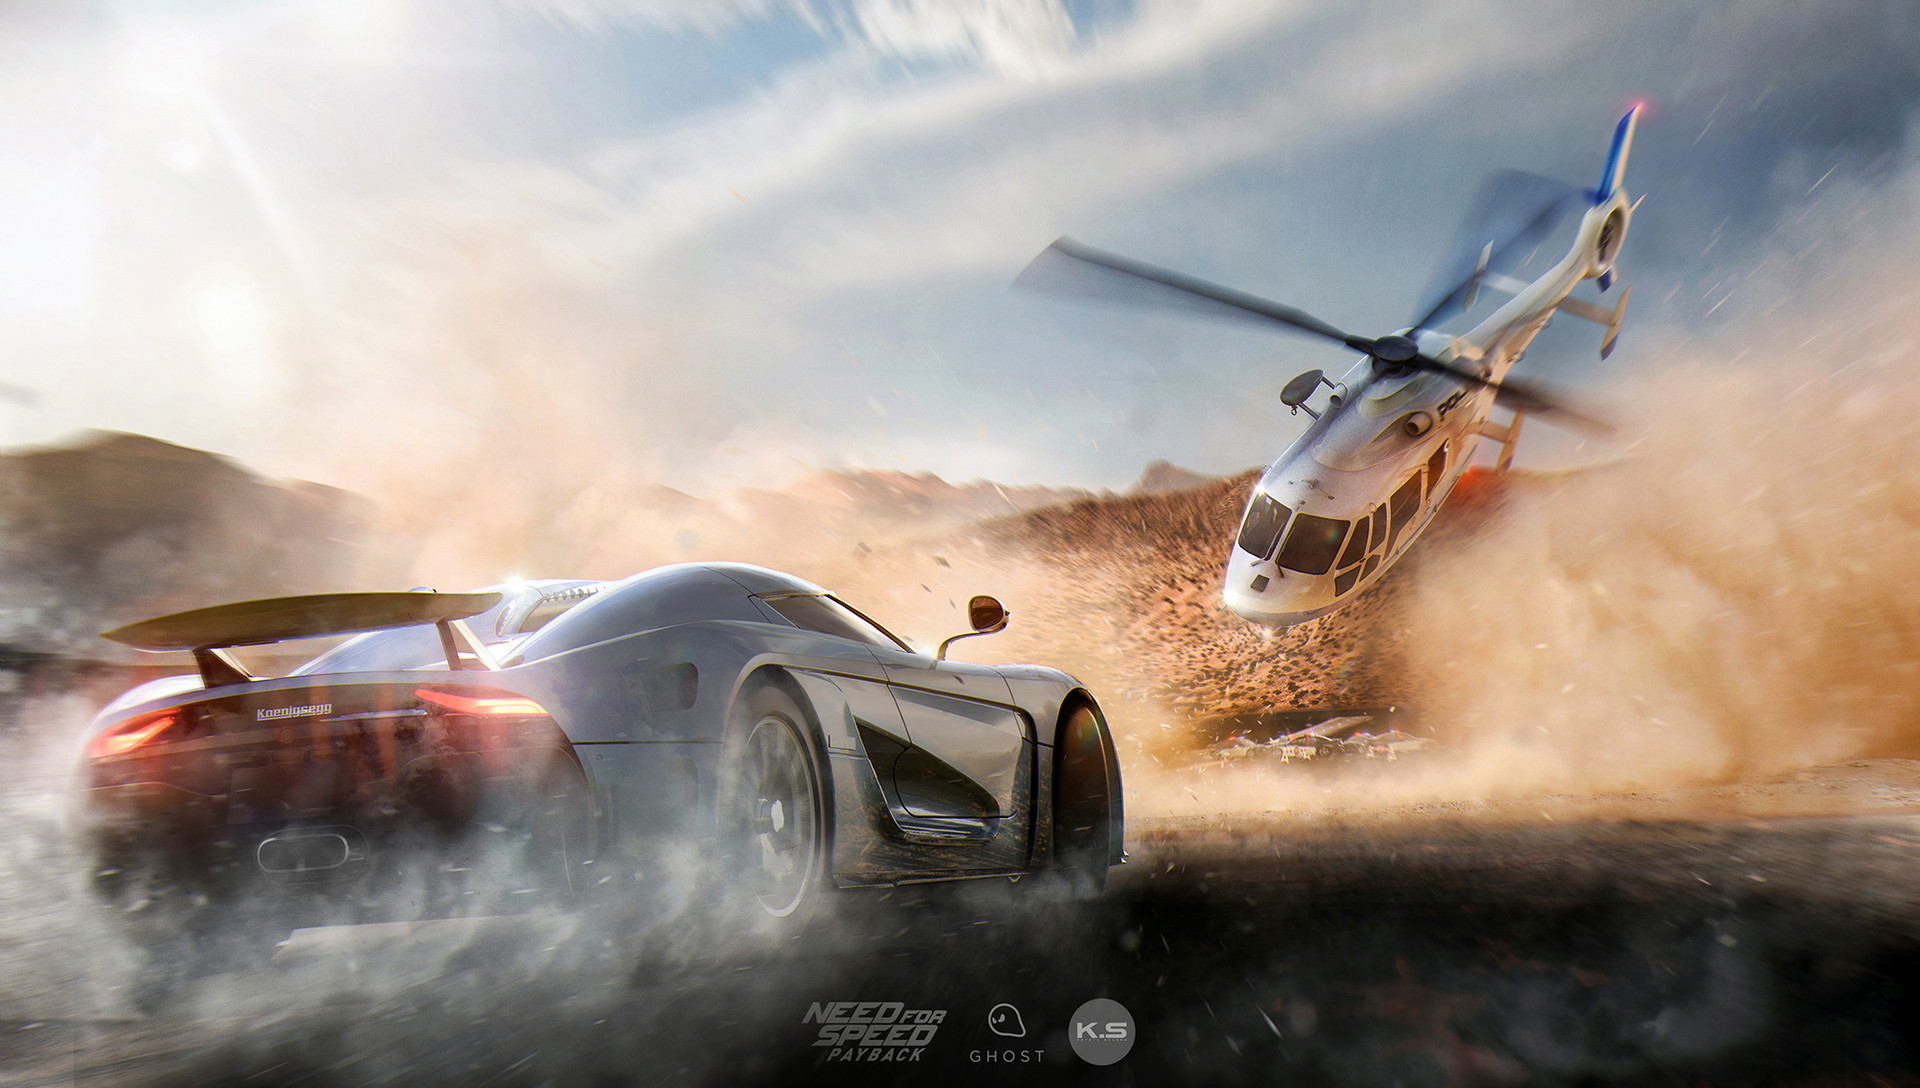 Need For Speed Payback Artwork 430247 Hd Wallpaper